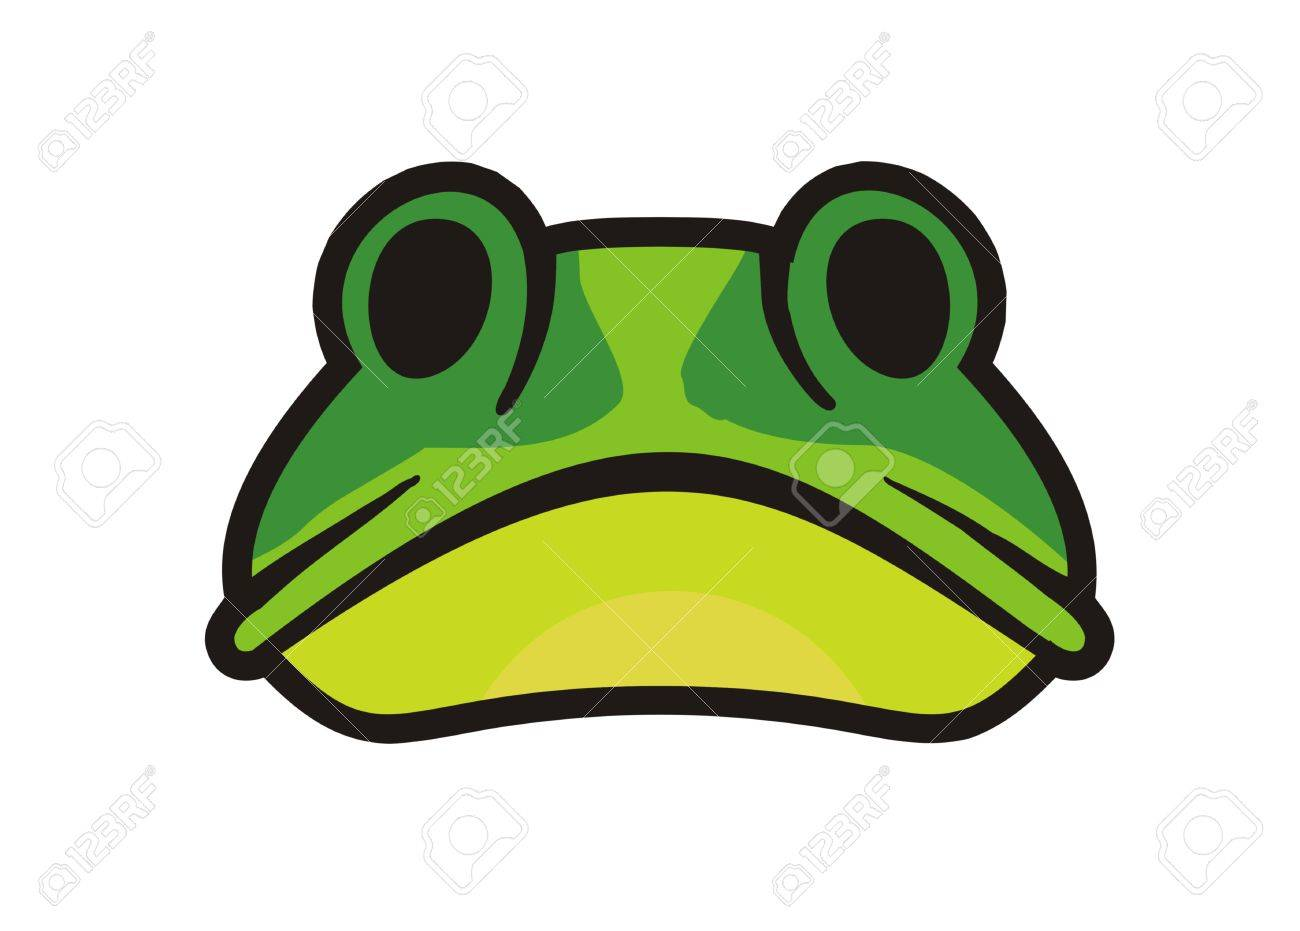 frog face simple illustration royalty free cliparts vectors and rh 123rf com